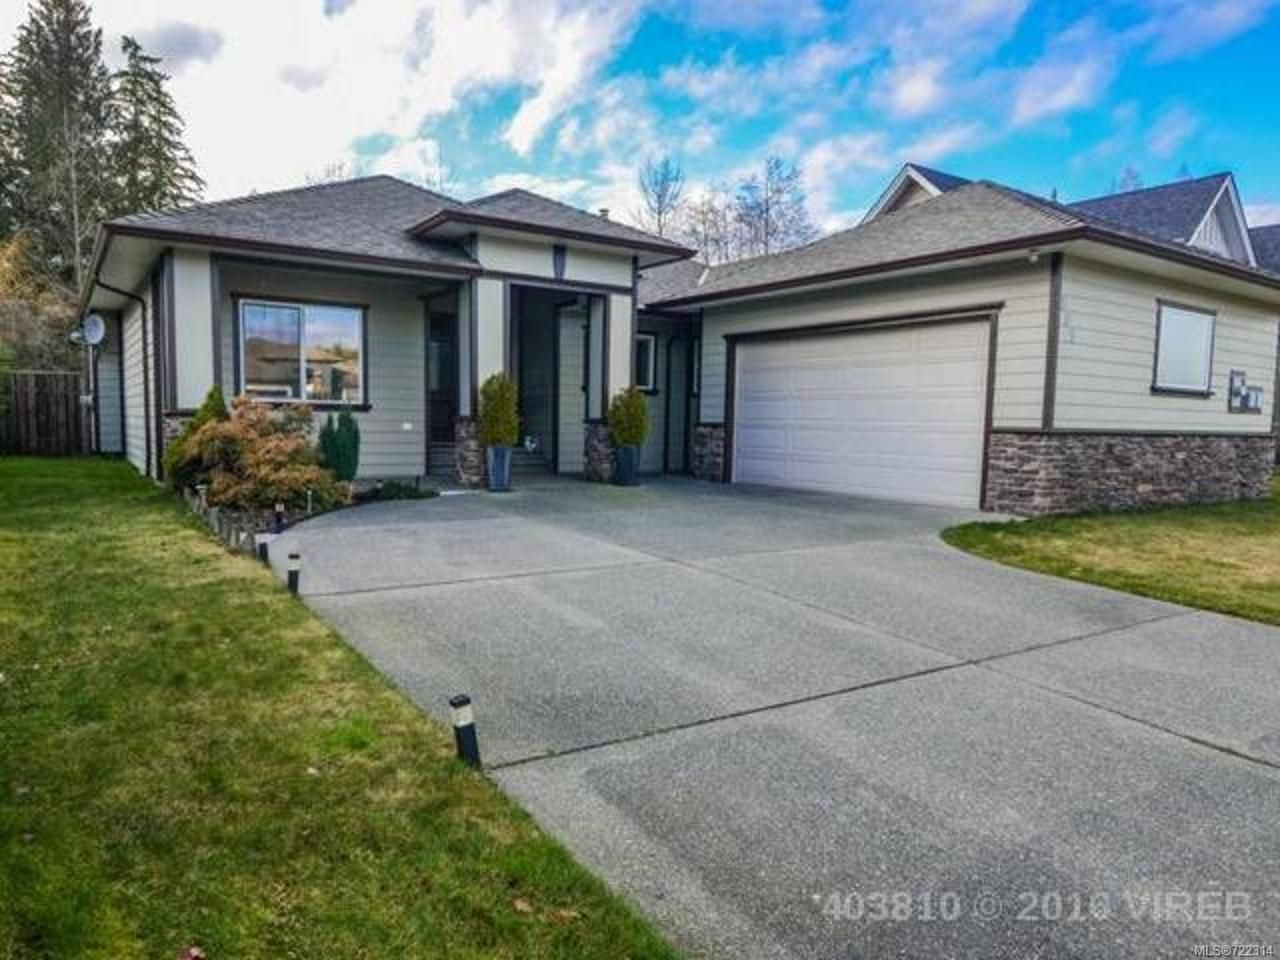 Main Photo: 505 Edgewood Dr in CAMPBELL RIVER: CR Campbell River Central House for sale (Campbell River)  : MLS®# 722314